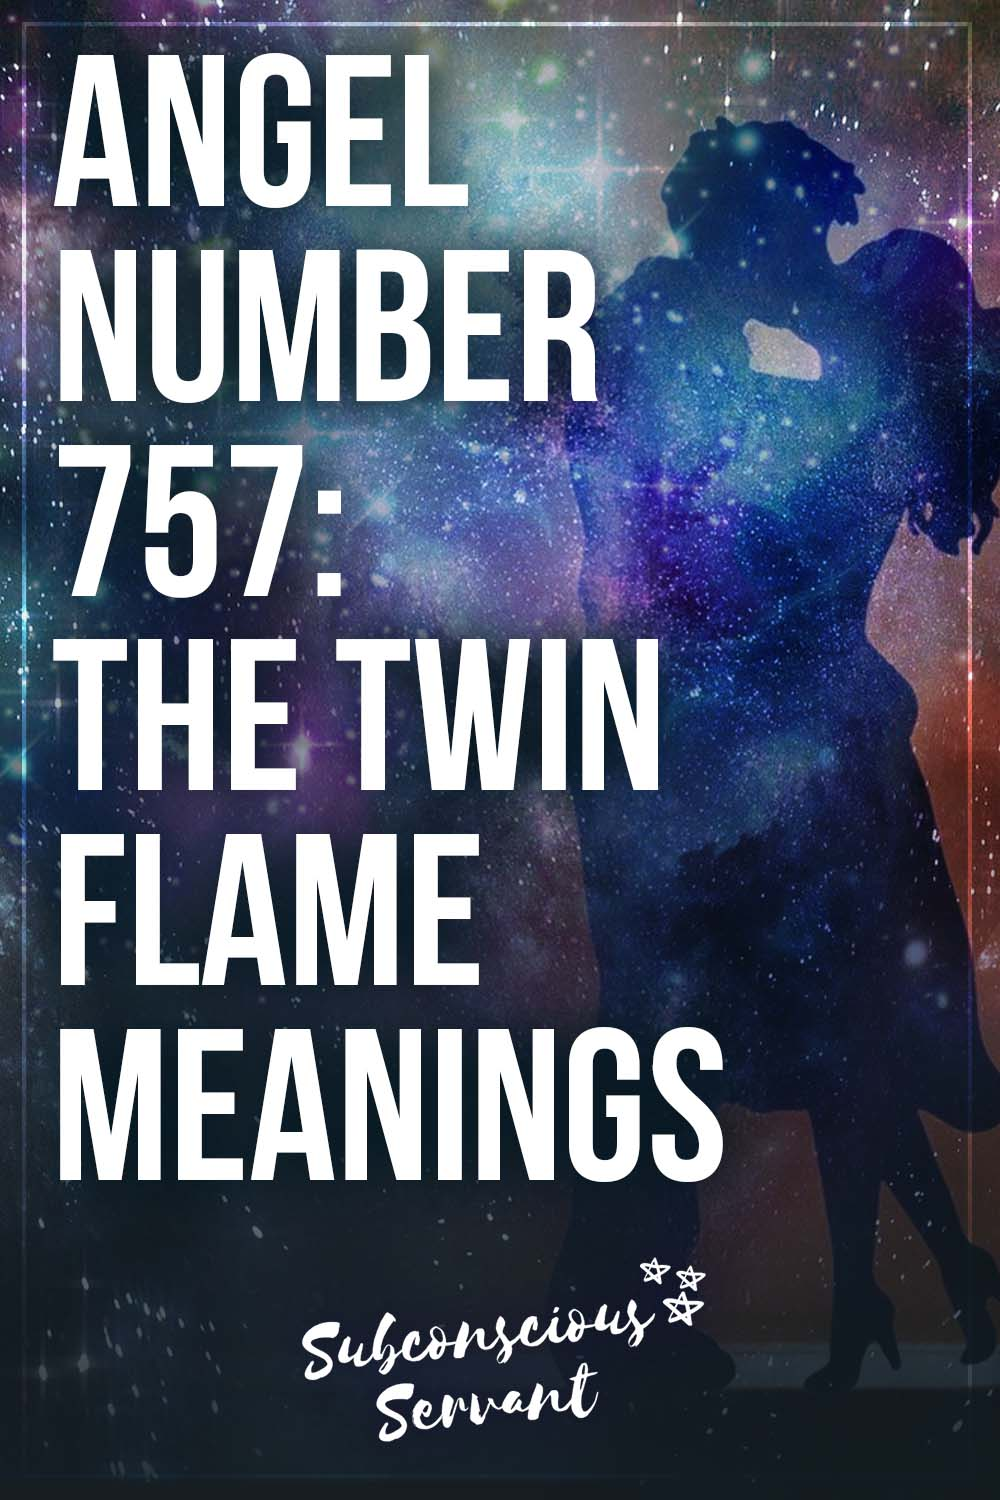 Angel Number 757: The Twin Flame Meanings